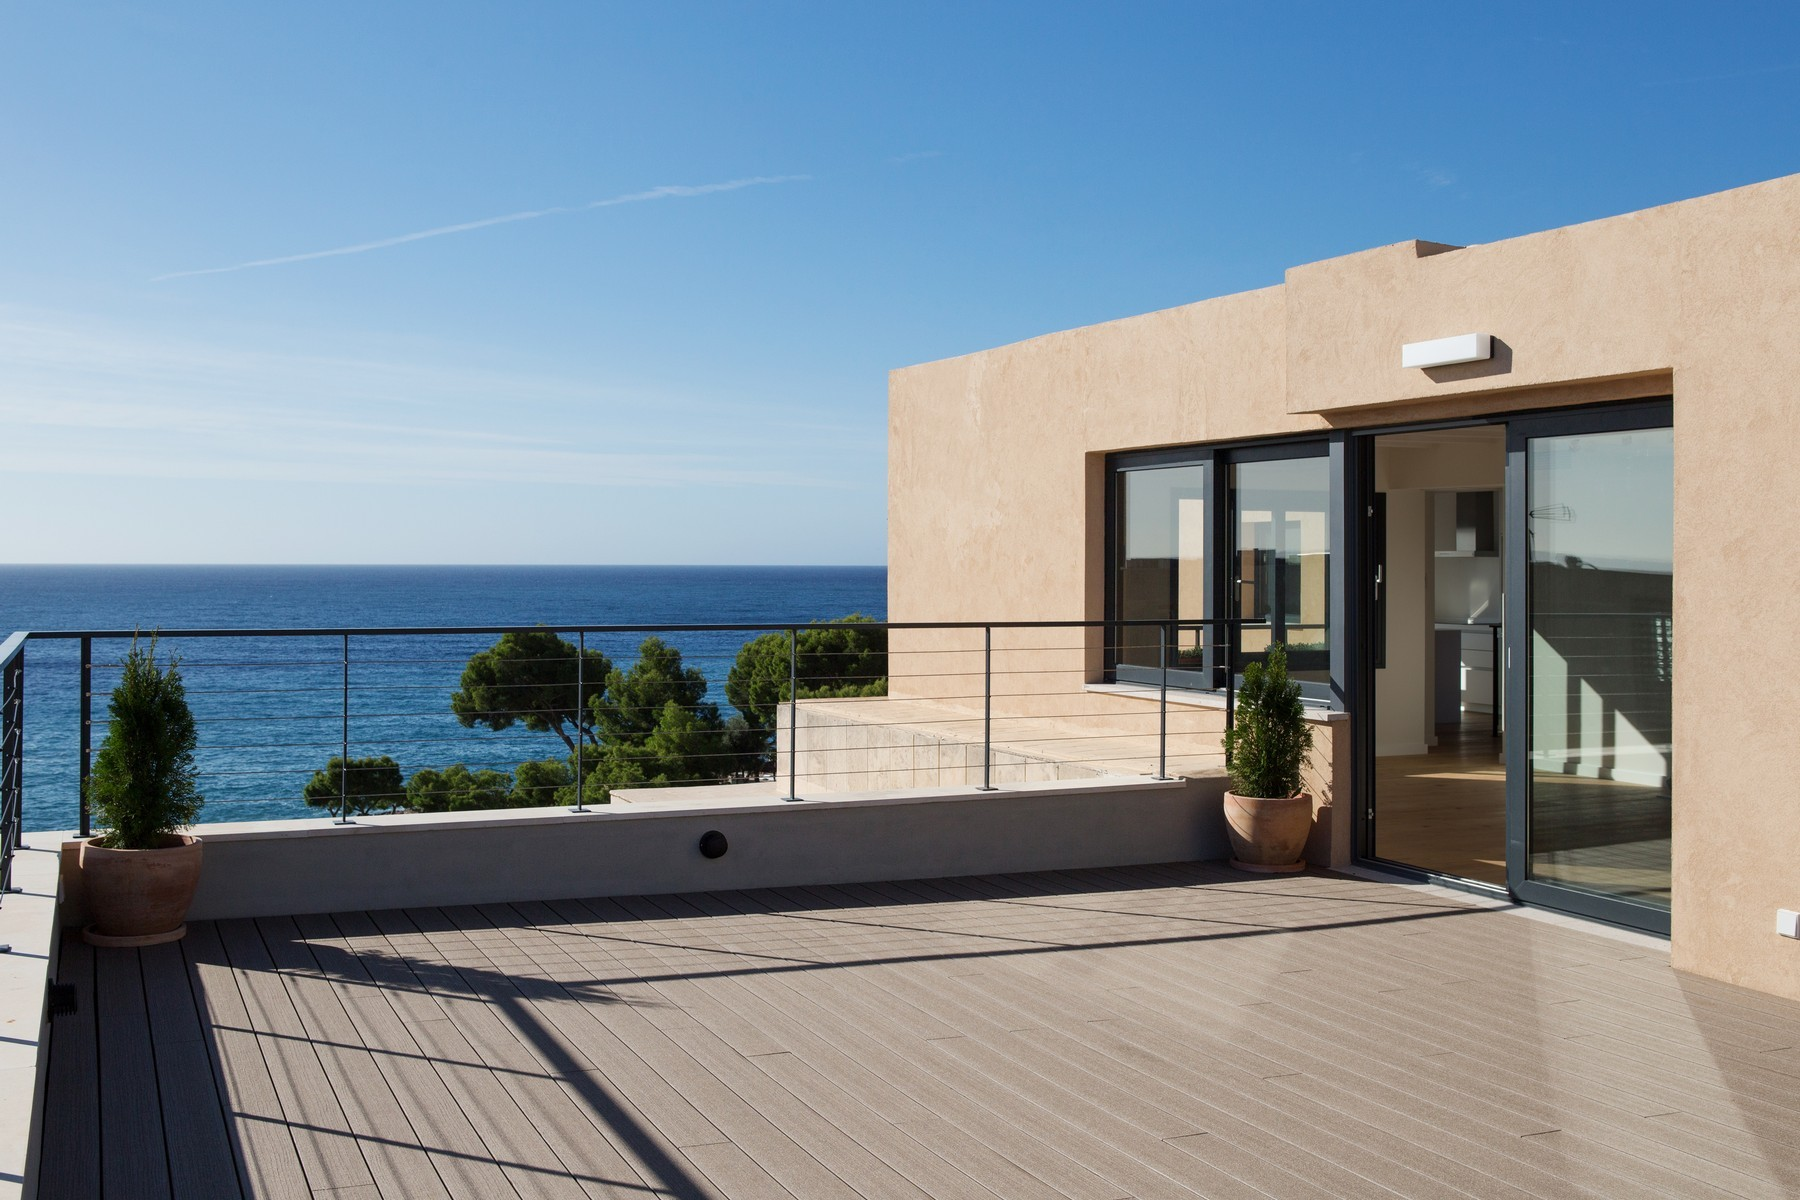 Apartment for Sale at Modern penthouse with sea access in Illetas Bendinat, Mallorca 07180 Spain